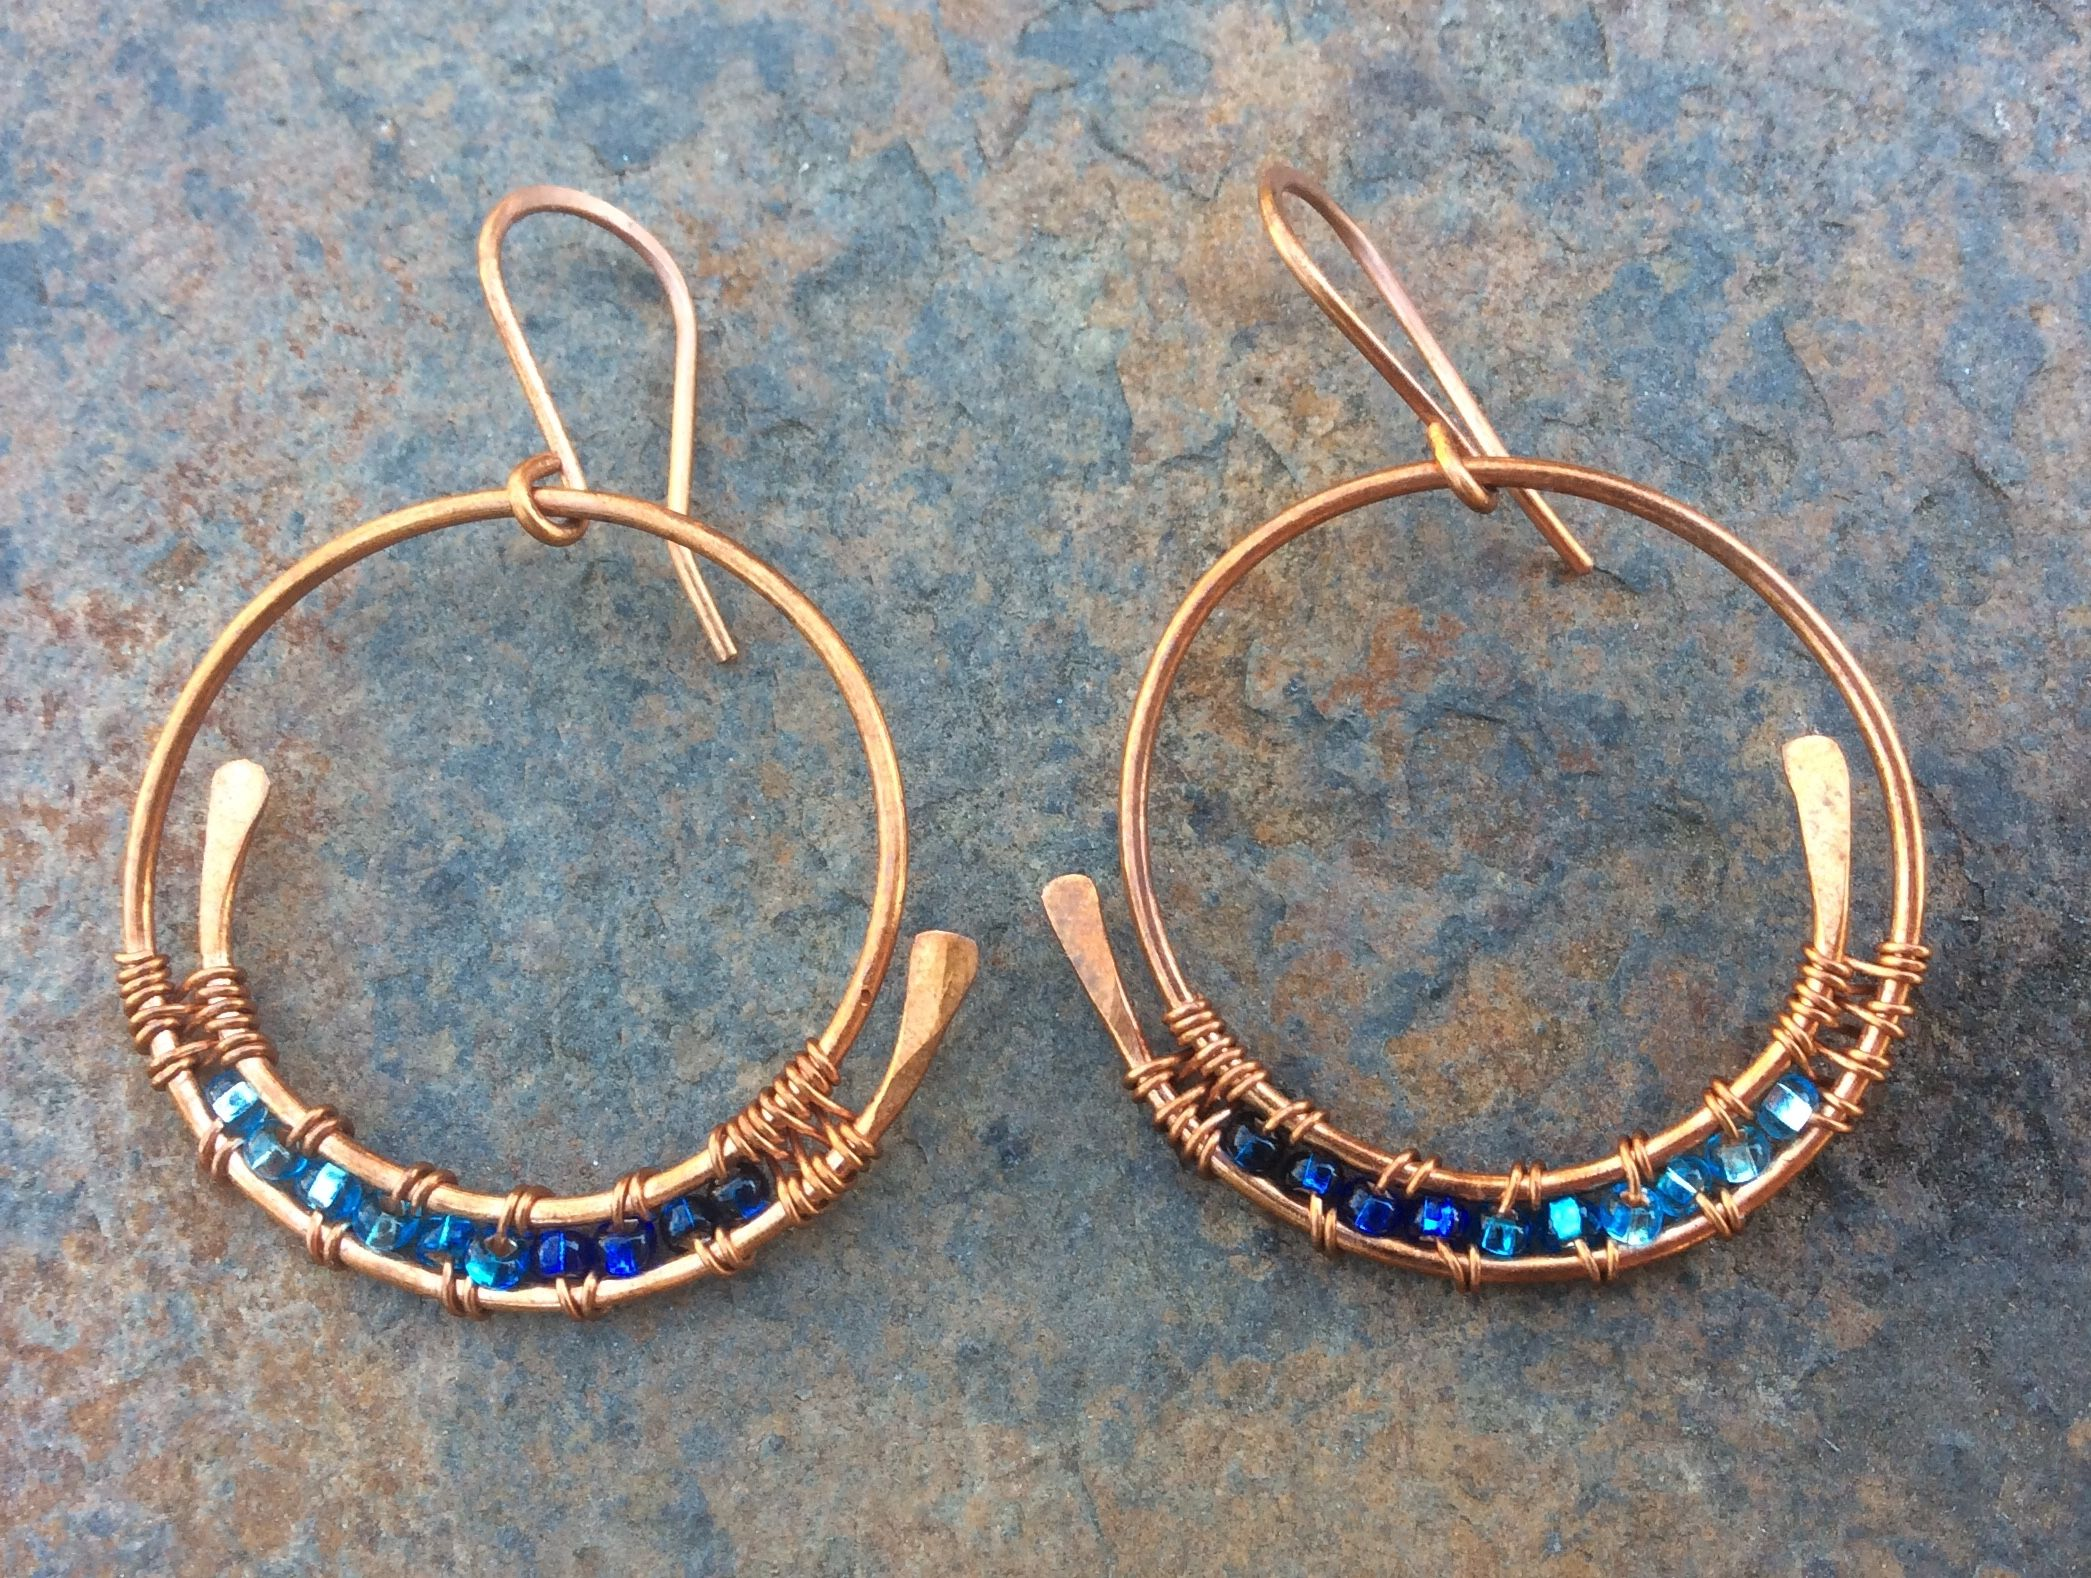 Copper Hoops Blue Beads Jewelry Making Wire